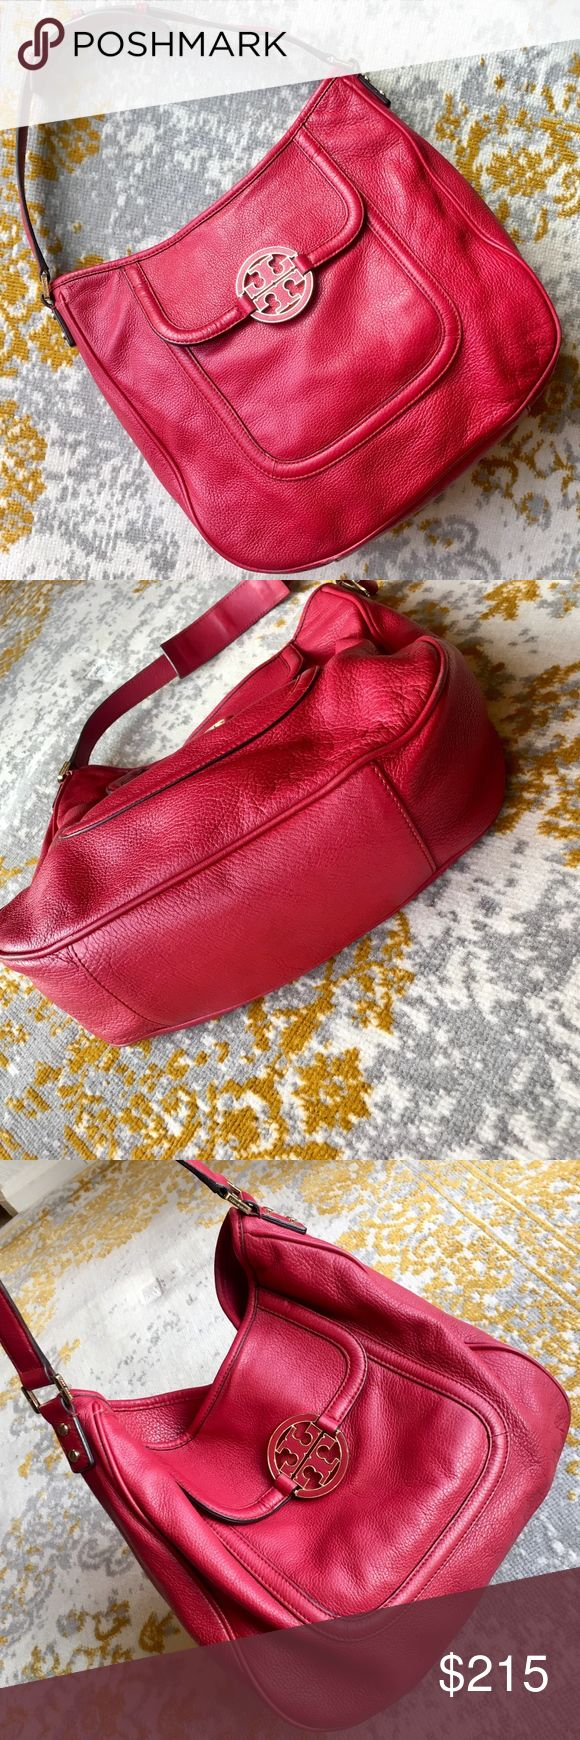 "Tory Burch Amanda Flat Hobo Bag Cherry Red Gorgeous, vibrant red Amanda Flat Hobo bag. Great pre-loved shape! Some normal wear around edges and general softening of the leather possible. Feel free to make an offer! 14""H x 17""W x 1 1/4""D, 7"" drop. Tory Burch Bags Hobos"